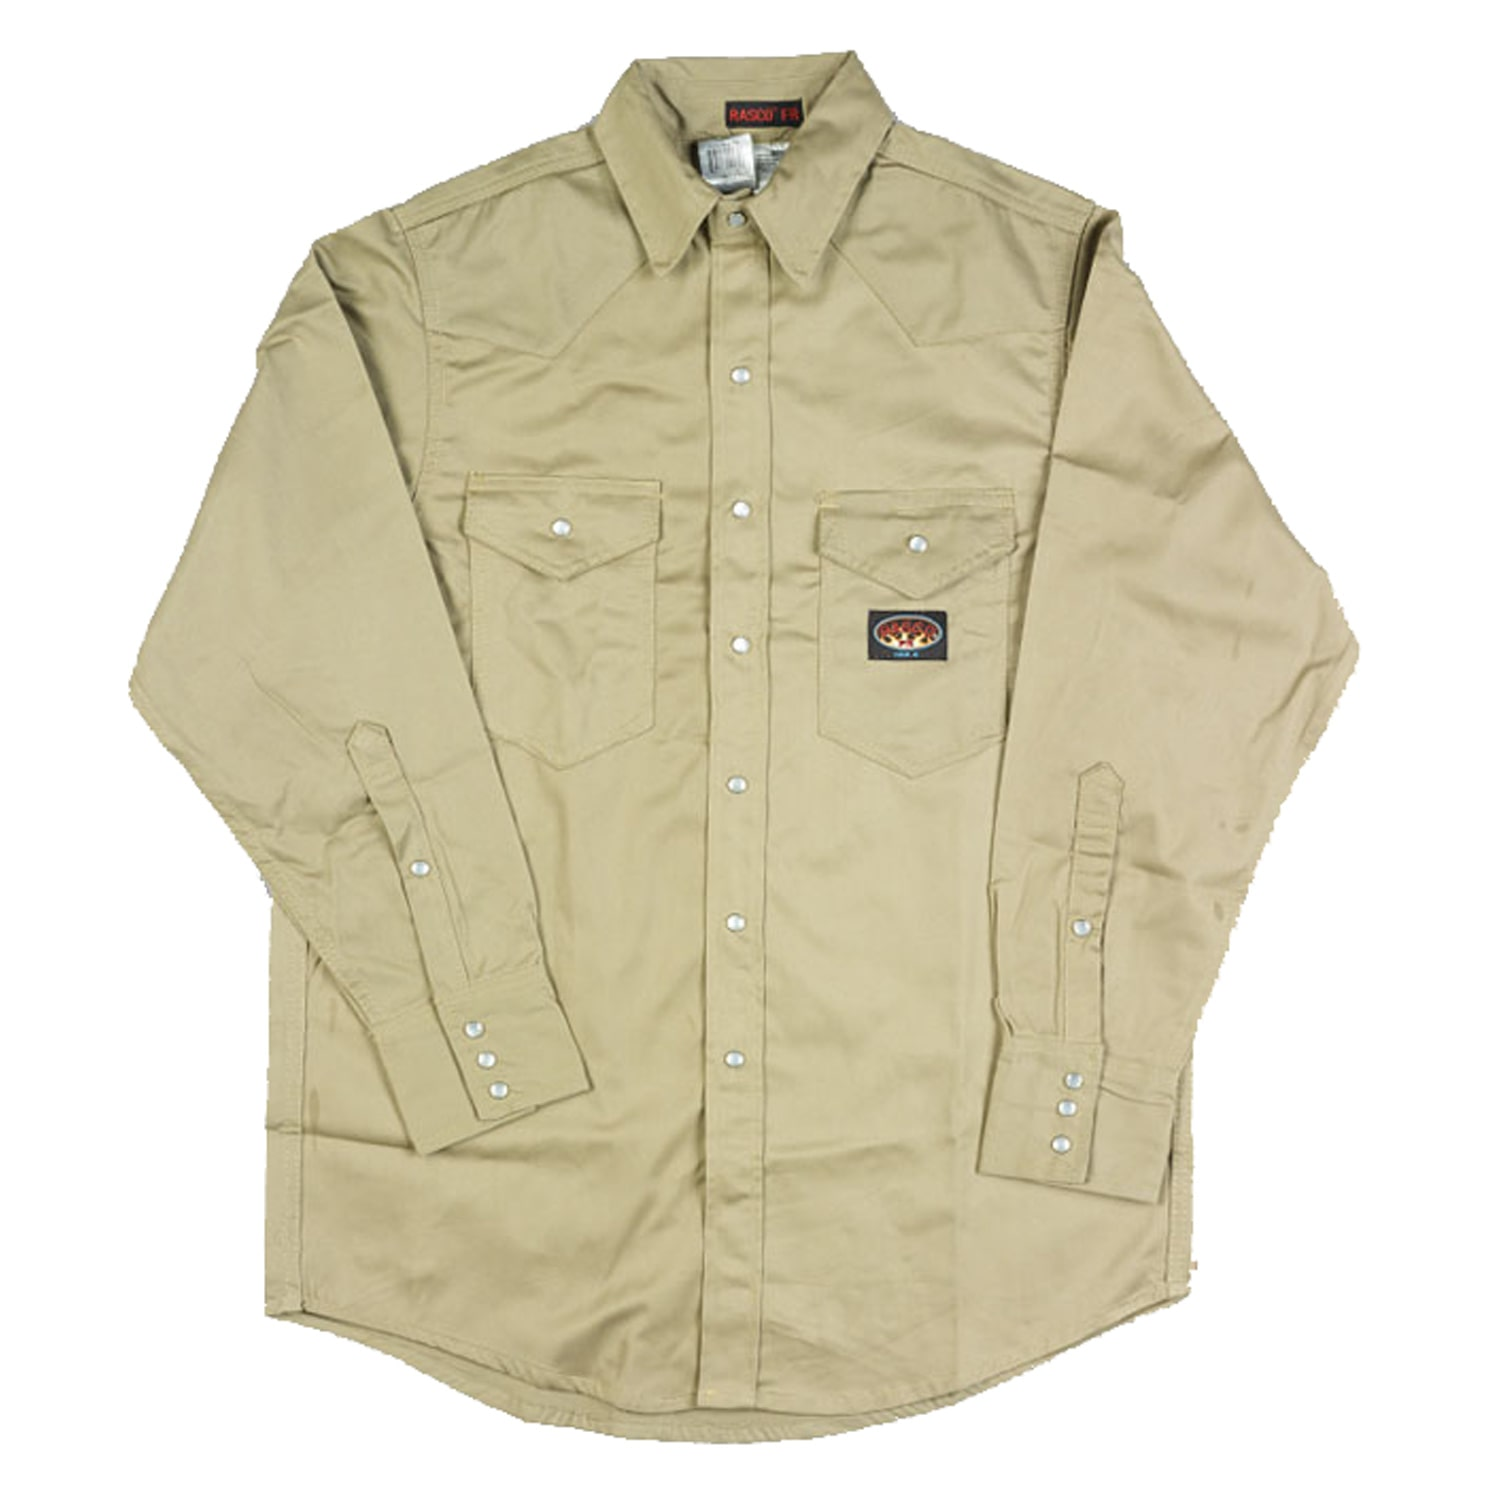 Arc rated men 39 s rasco lightweight shirt fr750 for Flame resistant work shirts